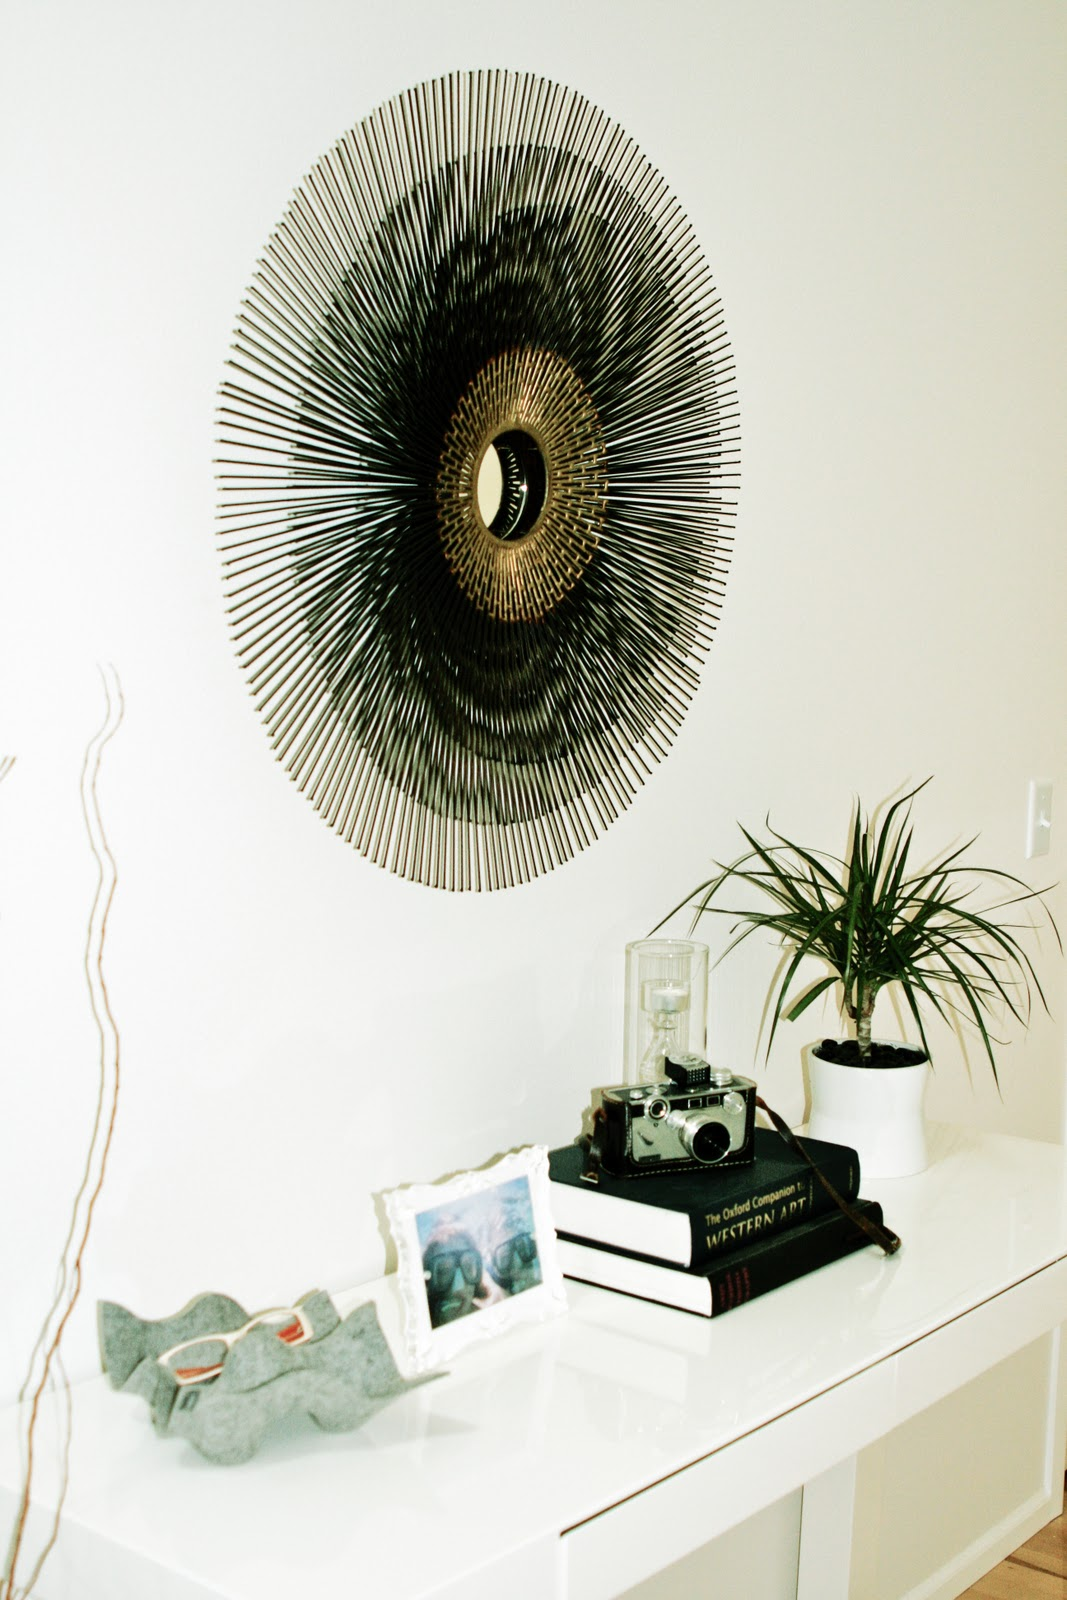 Mirror Collage Wall Decor | Crate and Barrel Mirrors | Crate and Barrel Mirrors